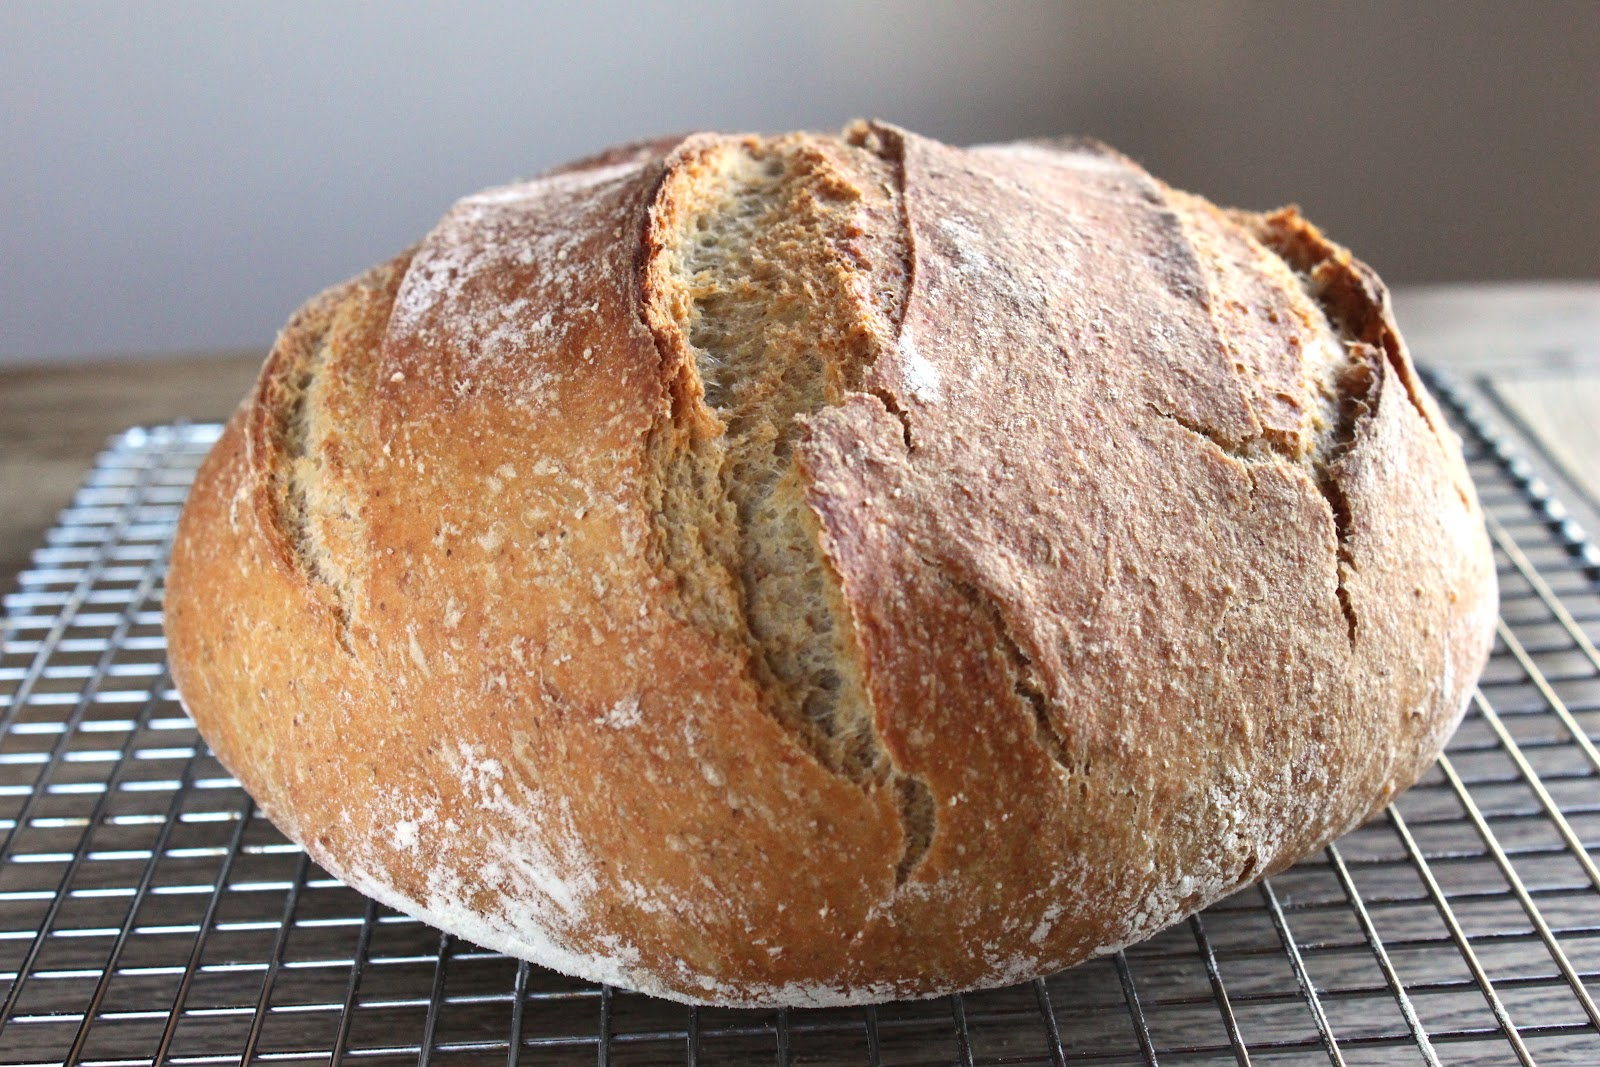 How to bake bread at home